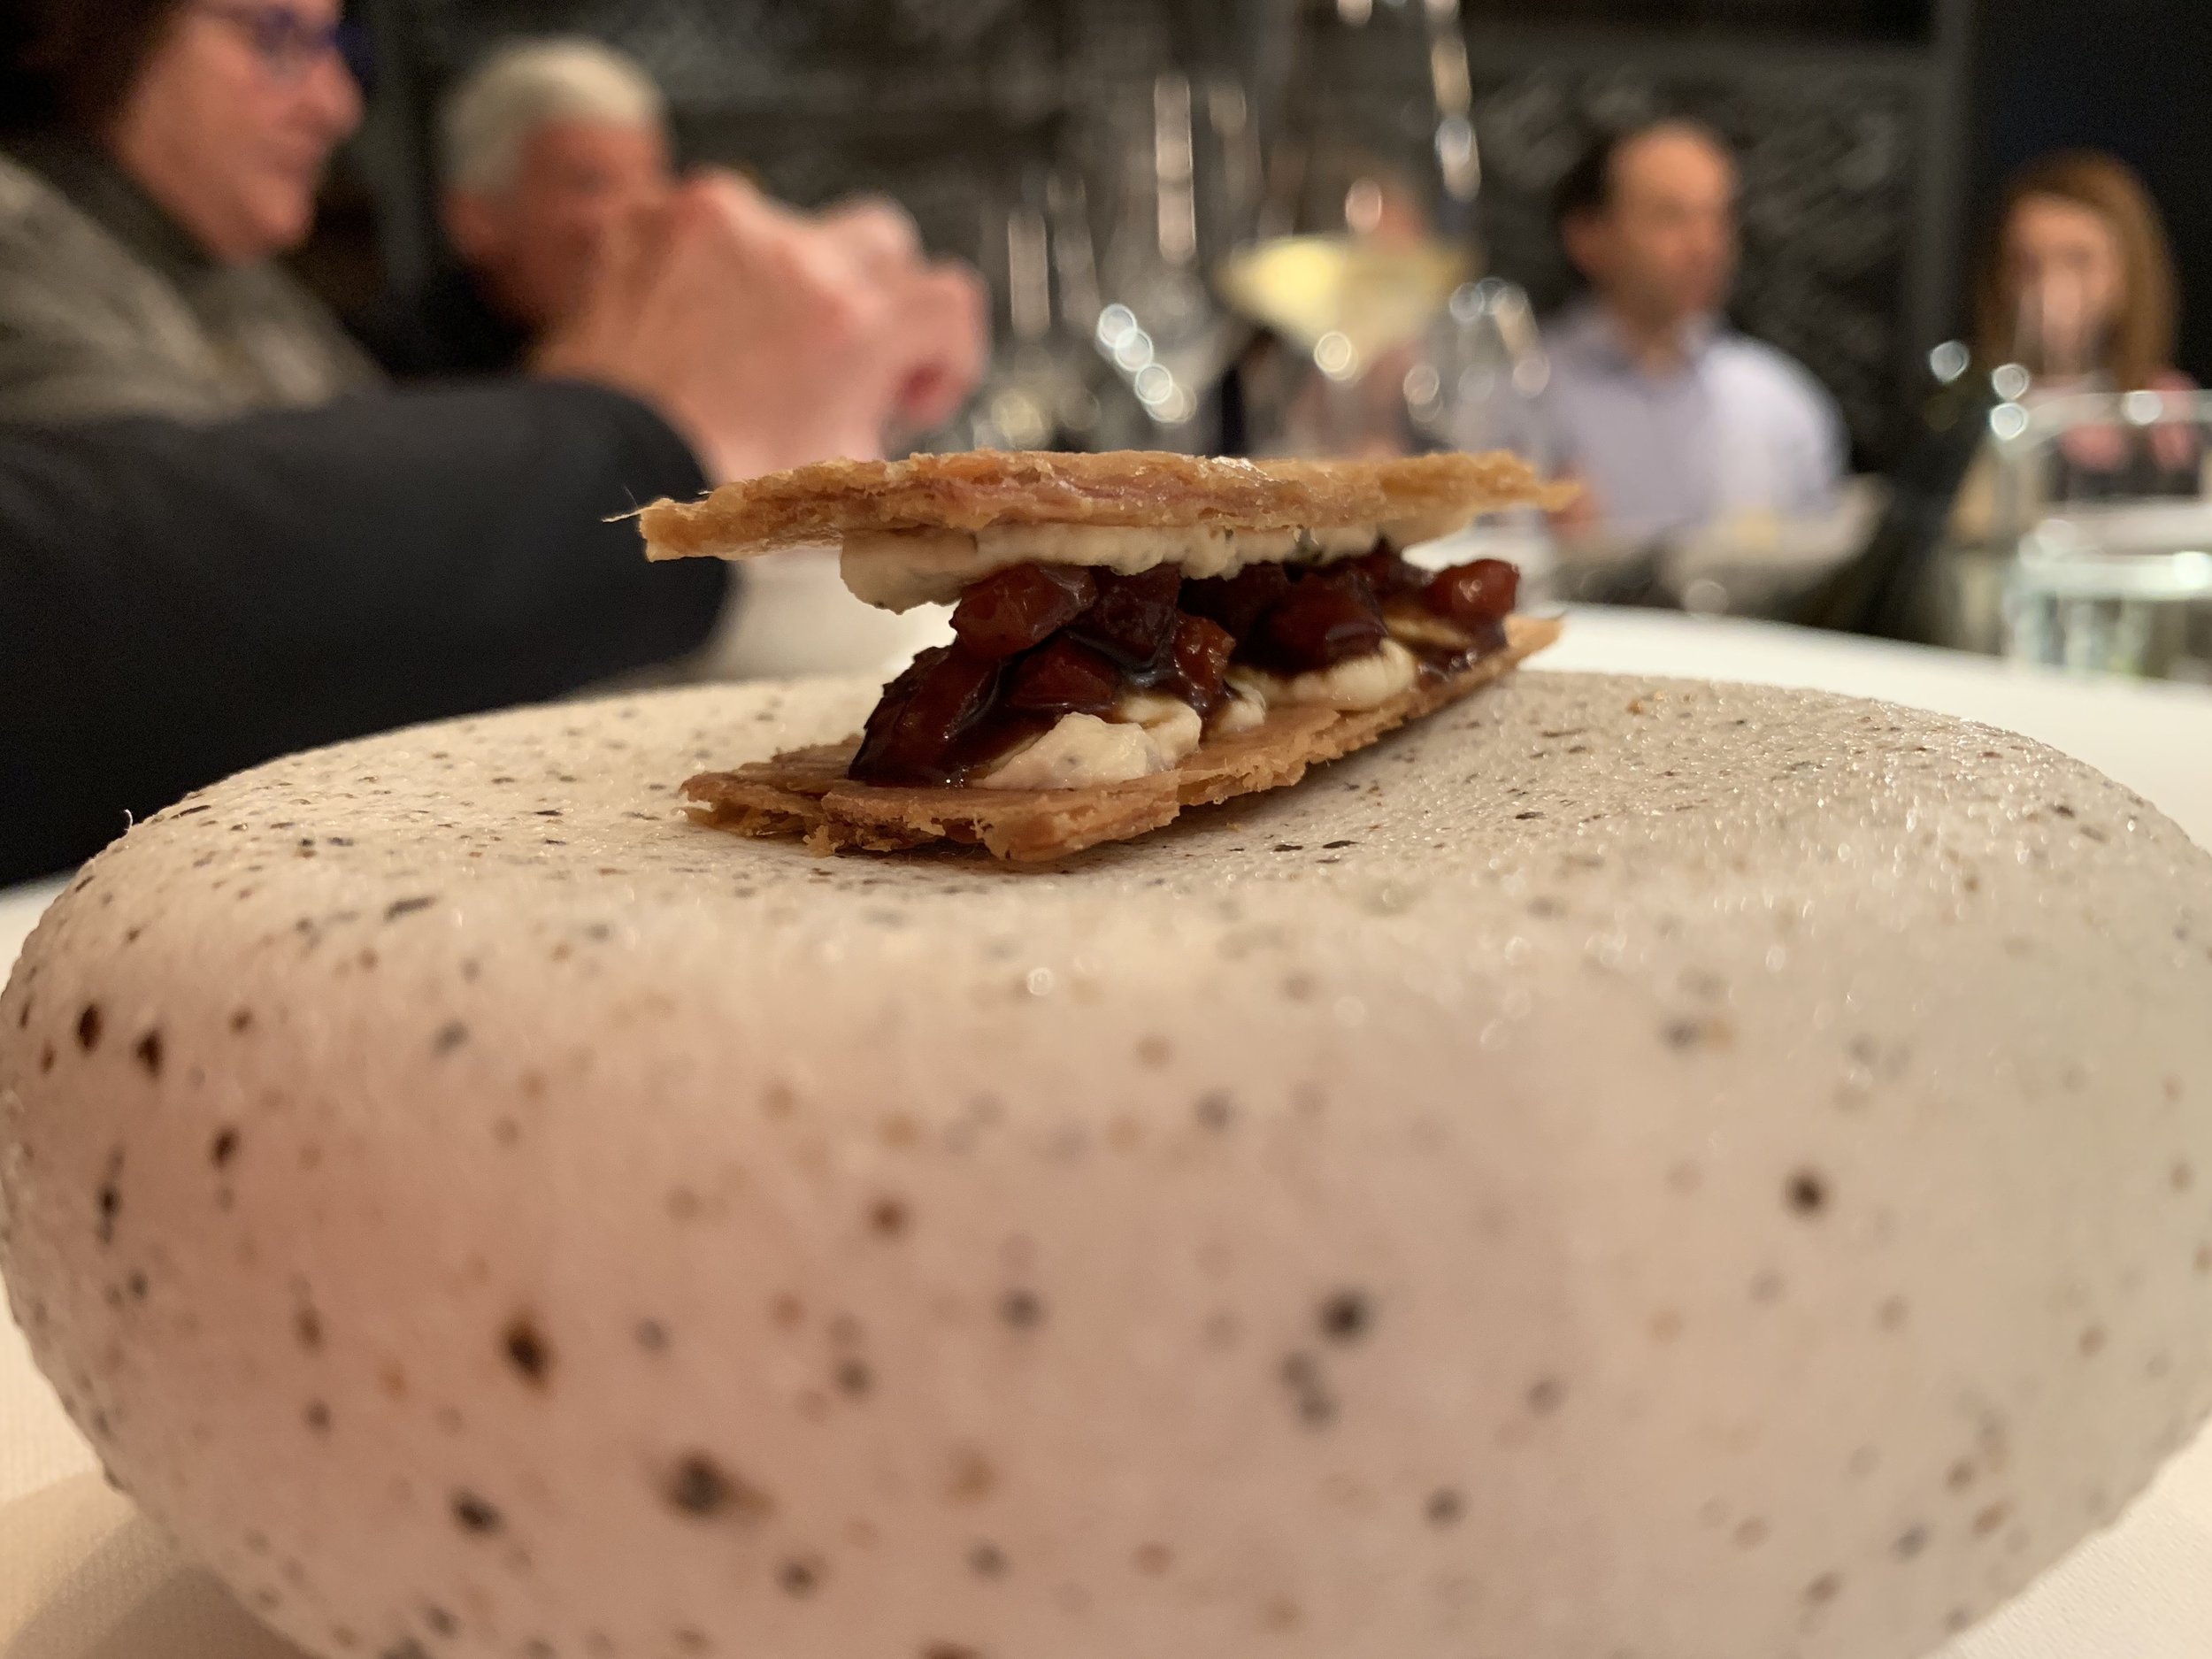 Chicken - The next snack was crispy chicken skin with rosemary-infused mascarpone and bacon jam. This was my favorite dish of the night. It reminded me of a Southern U.S. pork skin cracklin mixed with a British bacon butty.